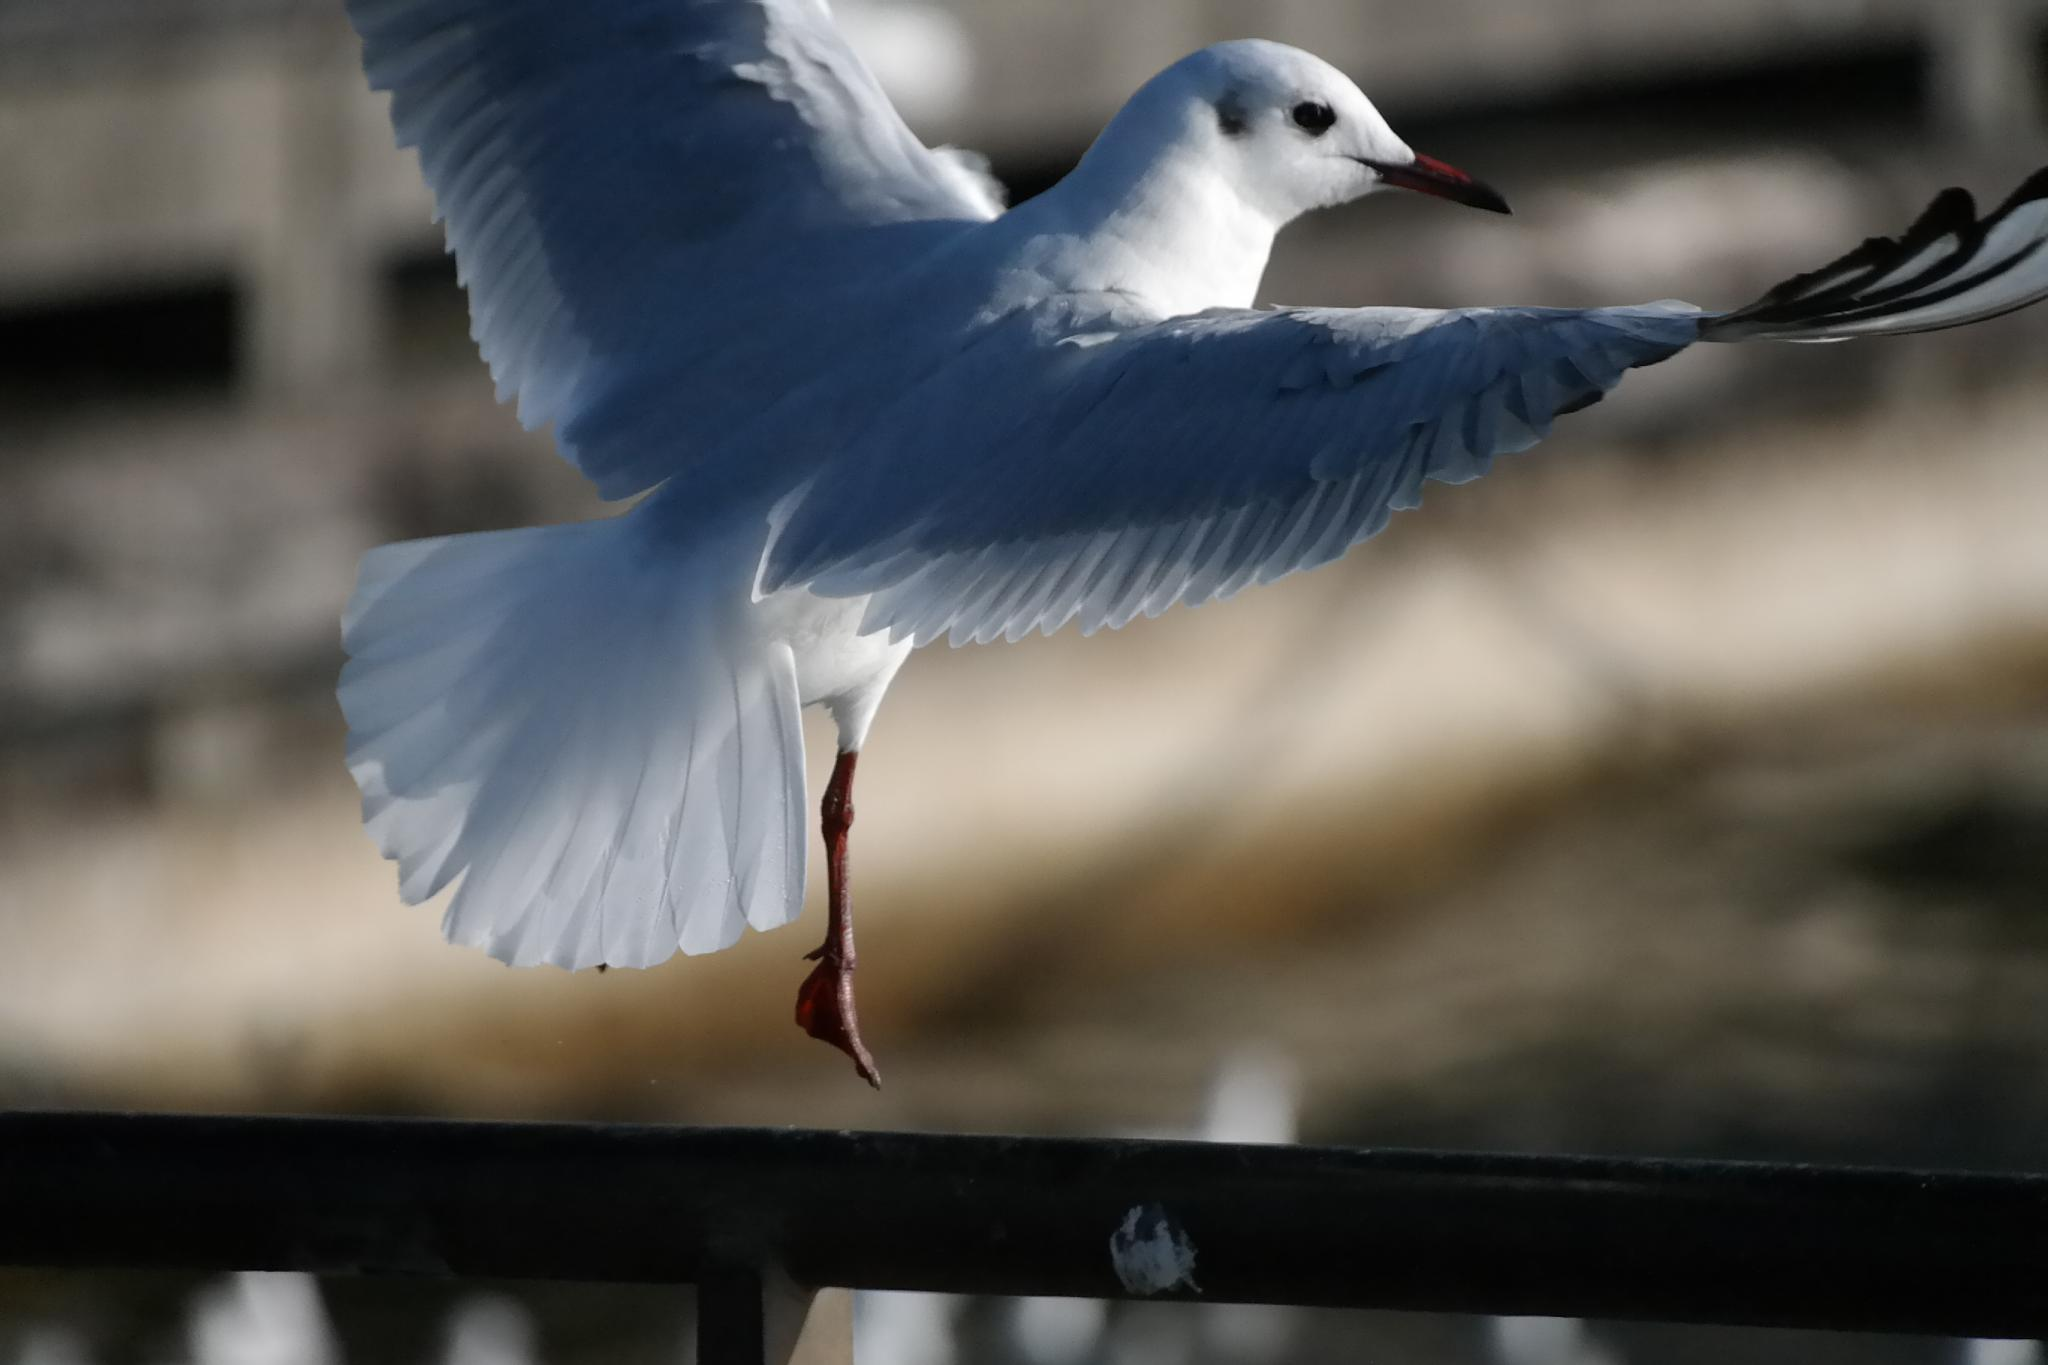 gull while landing by Chillotti Alessandro